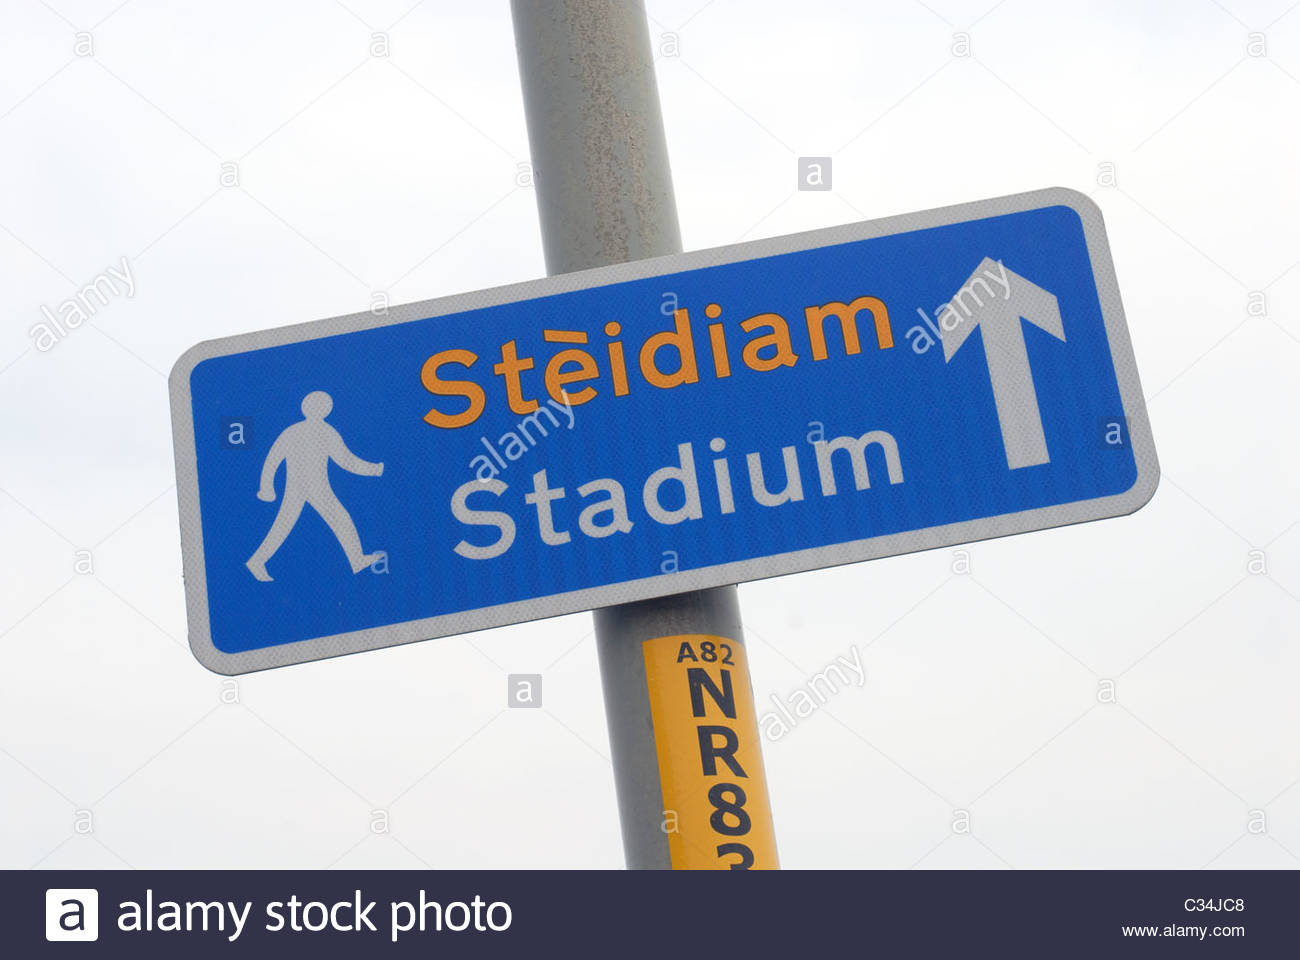 Inverness Scotland Bi-lingual Pedestrian Sign for the Stadium. - Stock Image